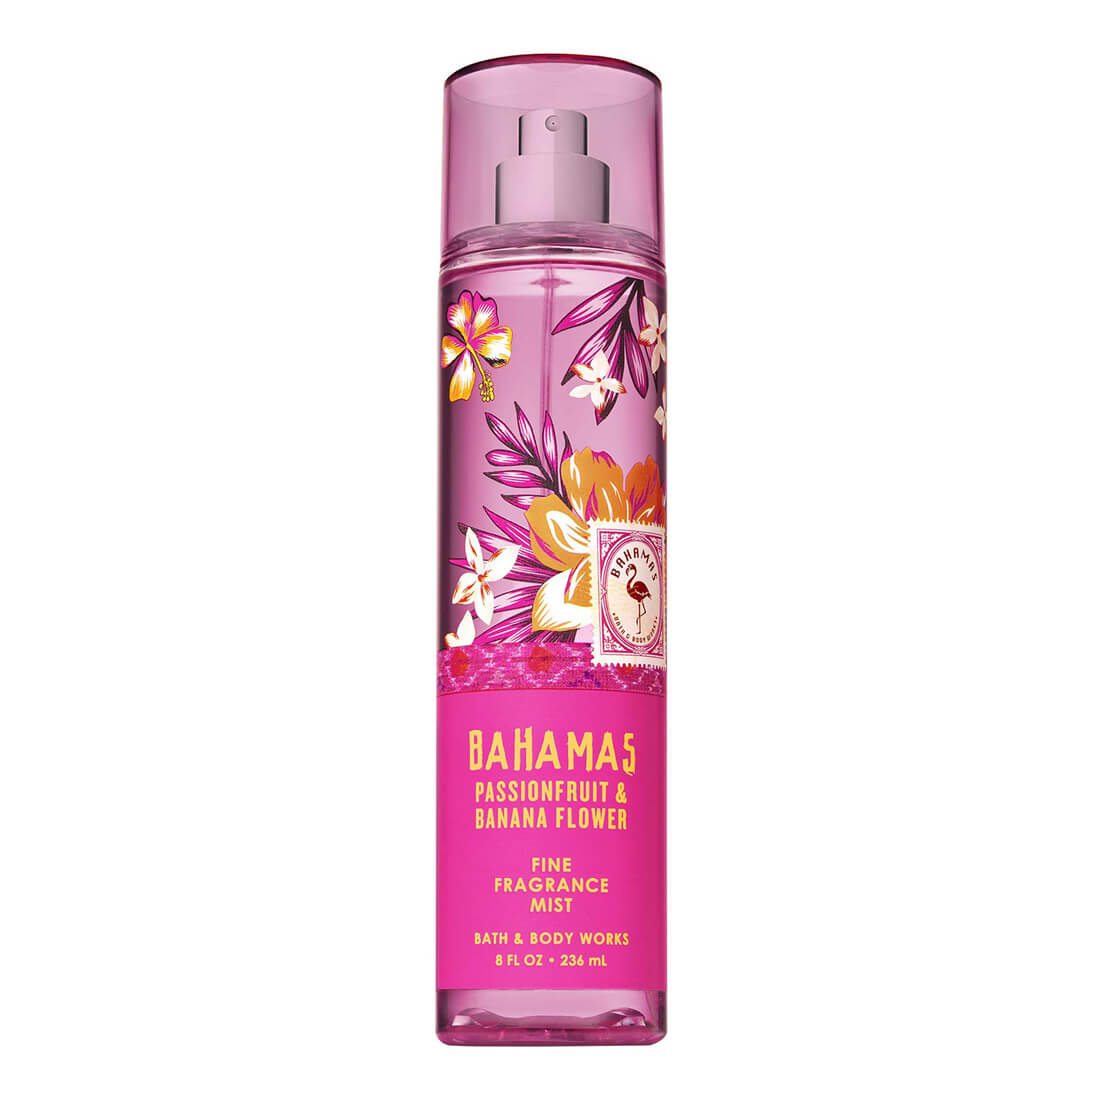 Bath & Body Works Bahamas Passionfruit & Banana Flower Signature Collection Fragrance Mist 236ml